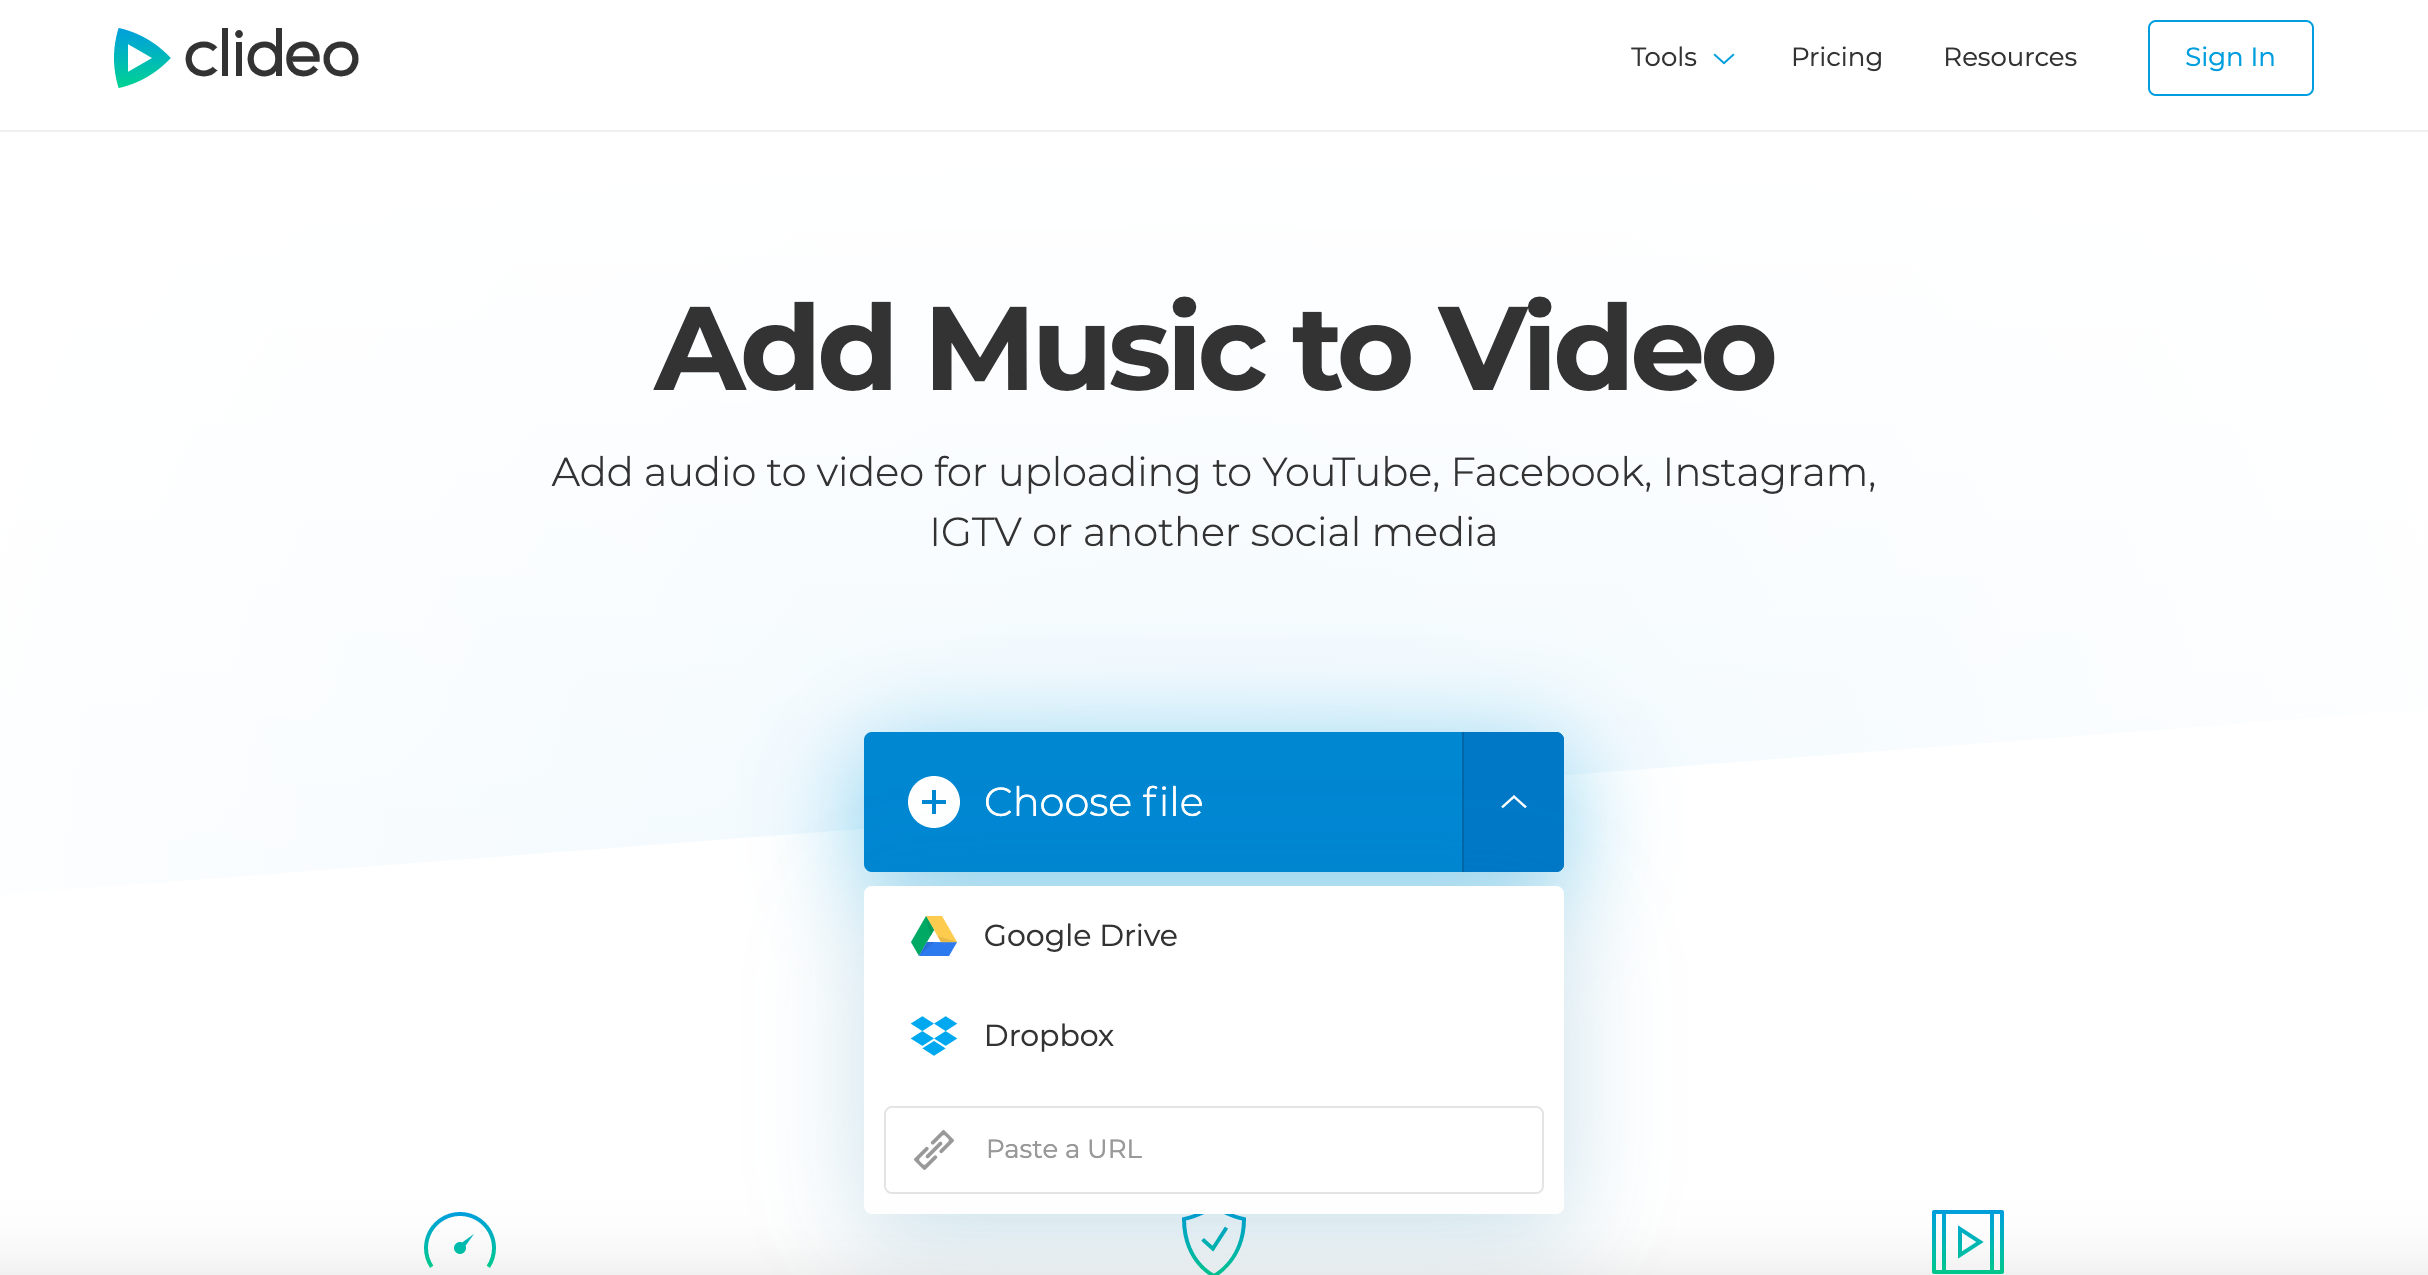 Add a YouTube video URL to then add audio